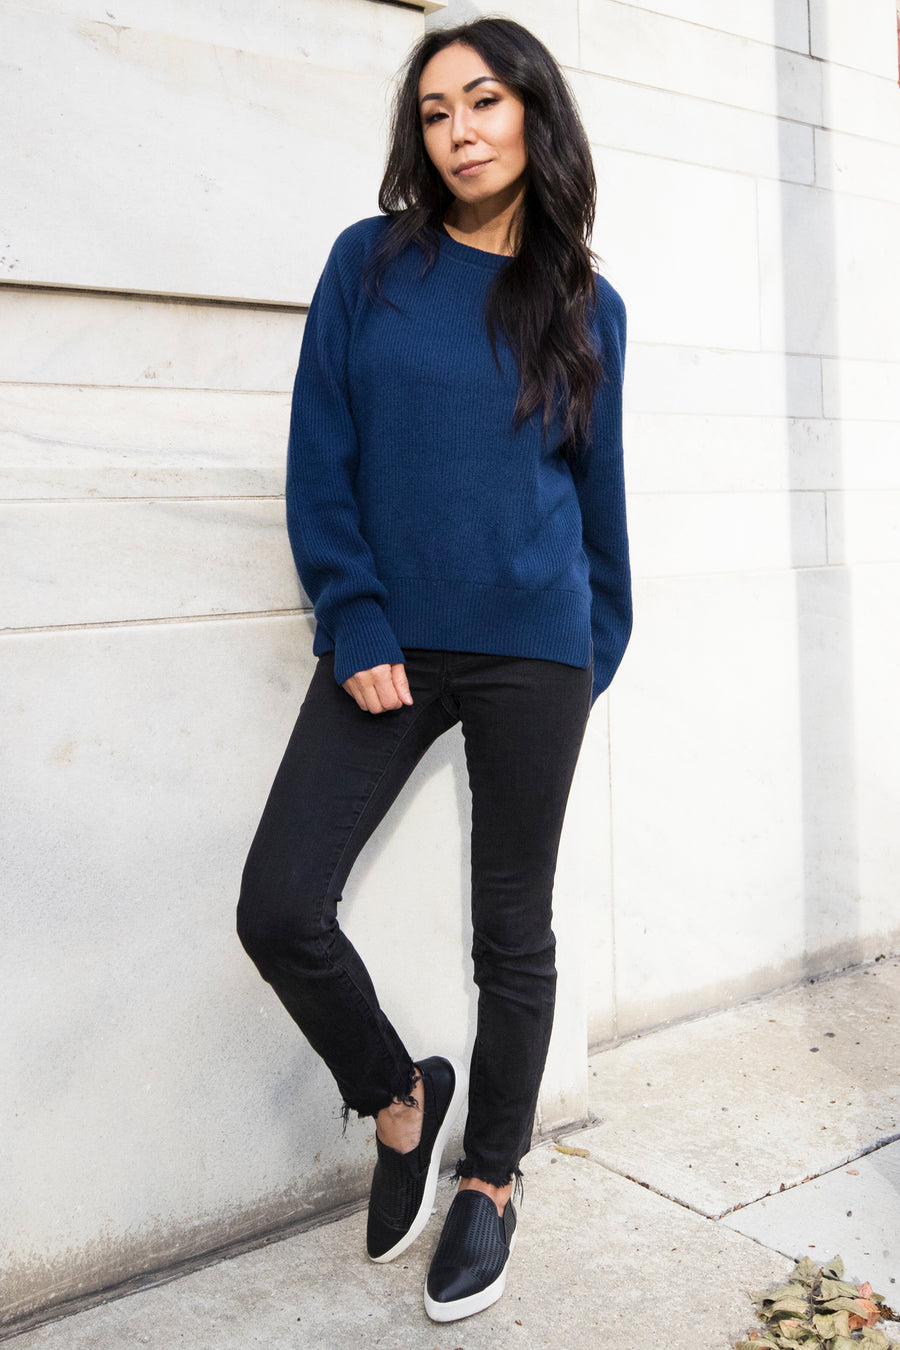 pine cashmere betsy trendy women's 100% pure cashmere crewneck sweater in blue